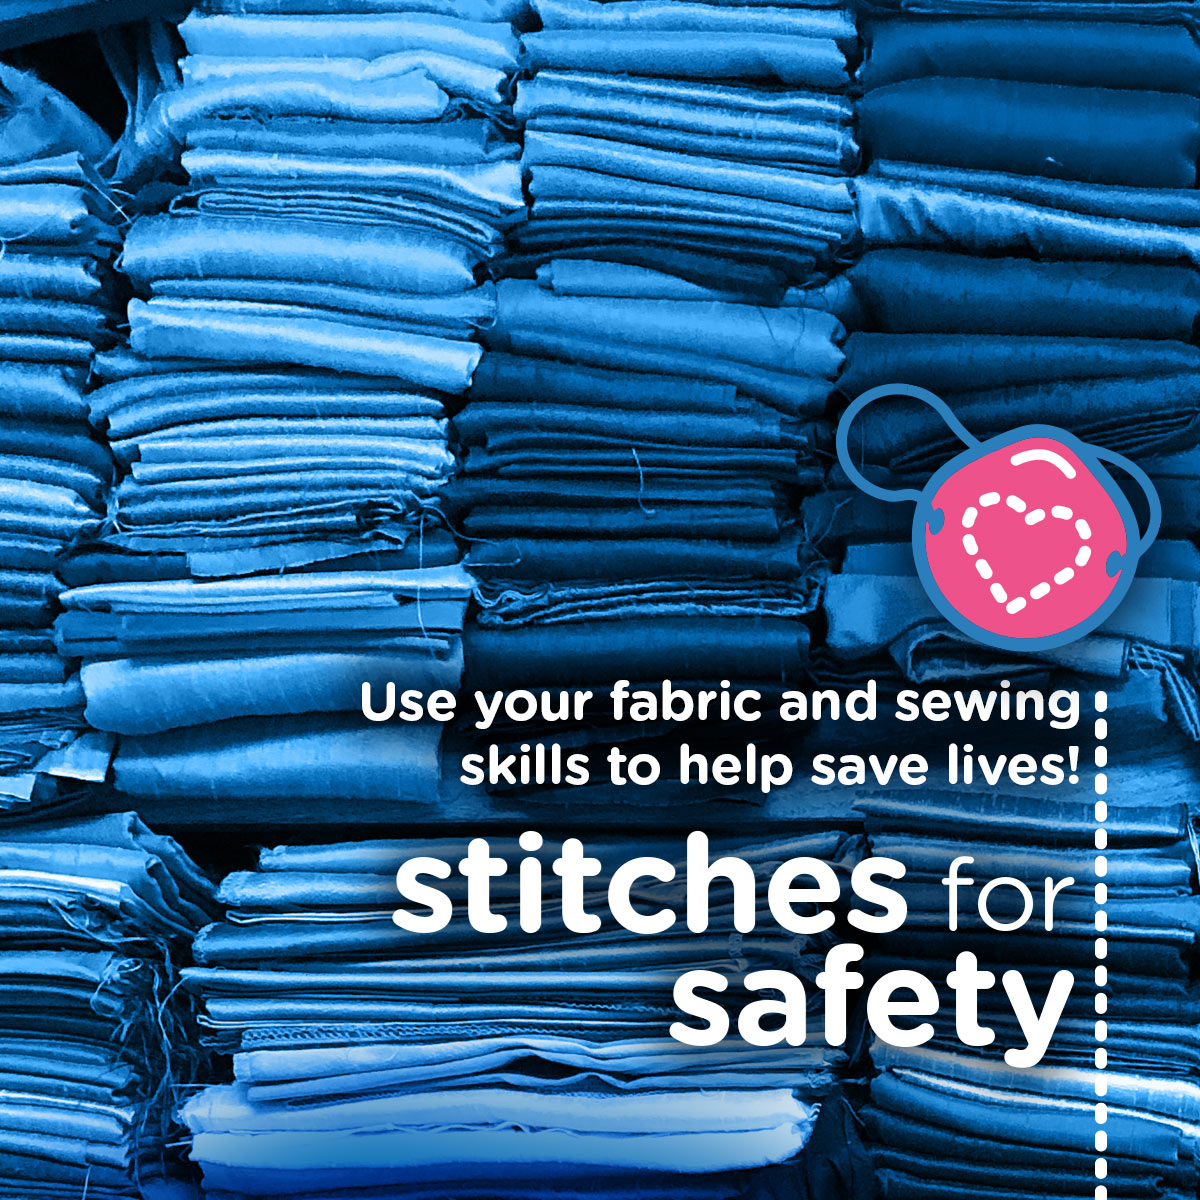 Stitching for Safety